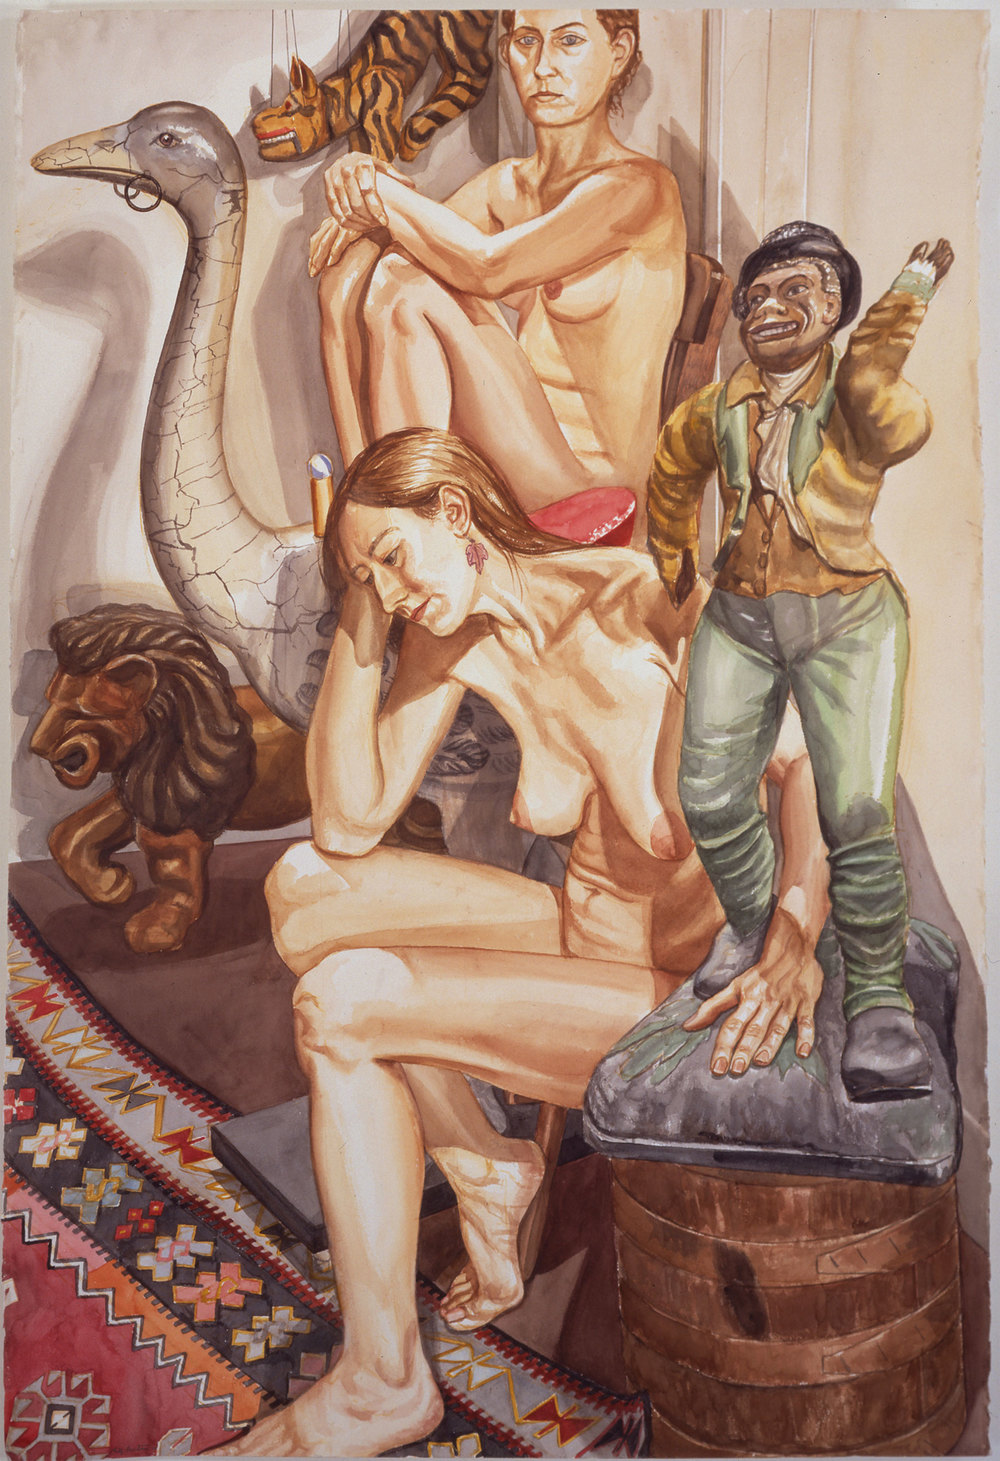 Two Nudes with Lion, Ostrich and Minstrel , 1994 Watercolor on paper 60 x 40 1/4 inches